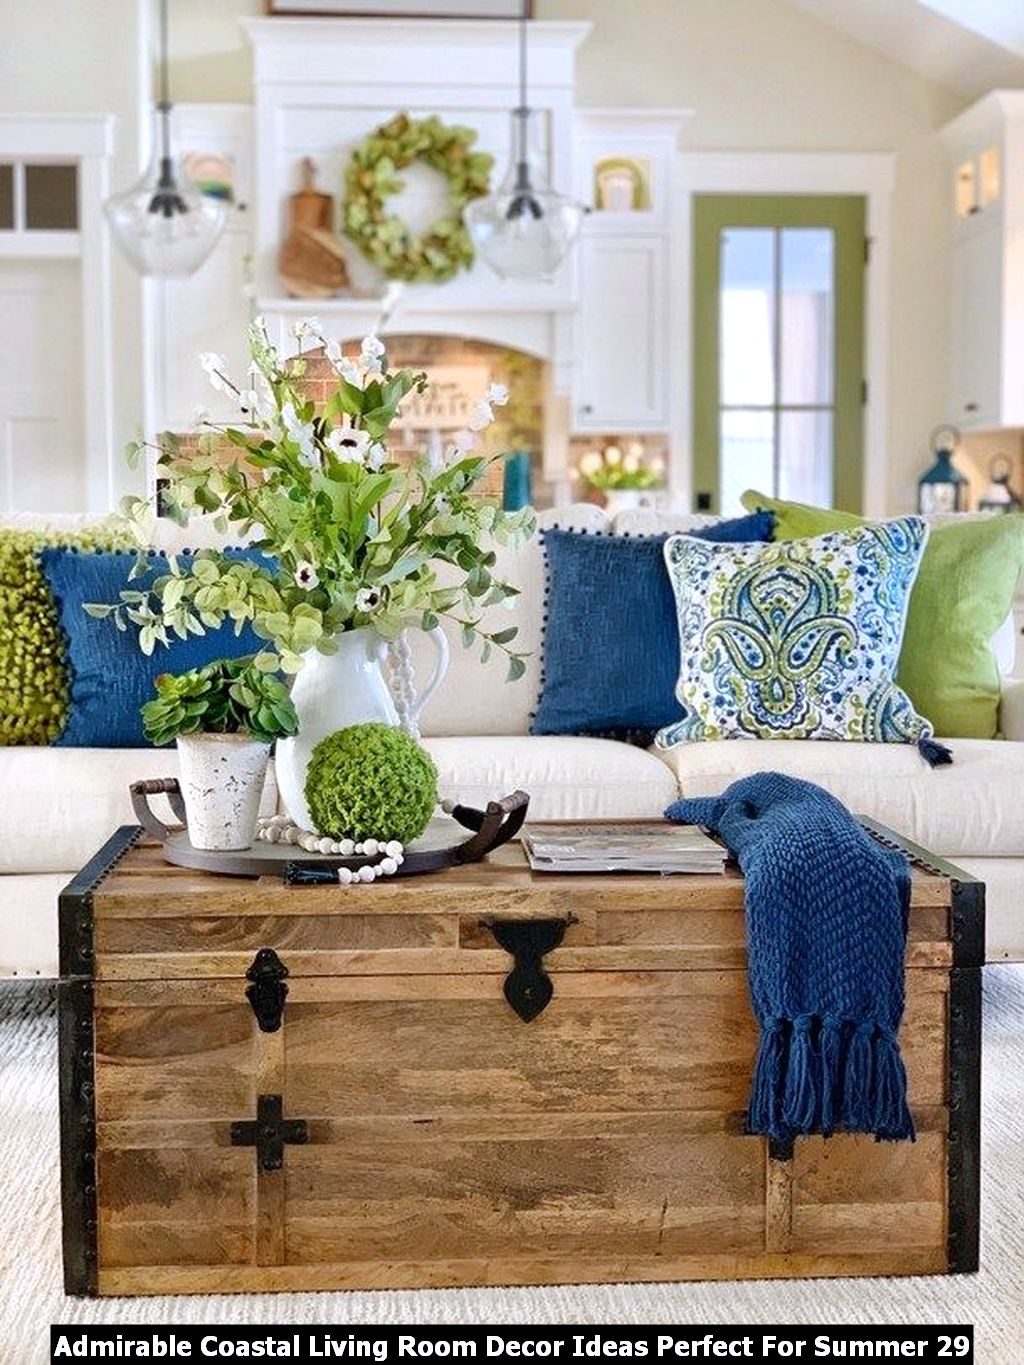 Admirable Coastal Living Room Decor Ideas Perfect For Summer 29